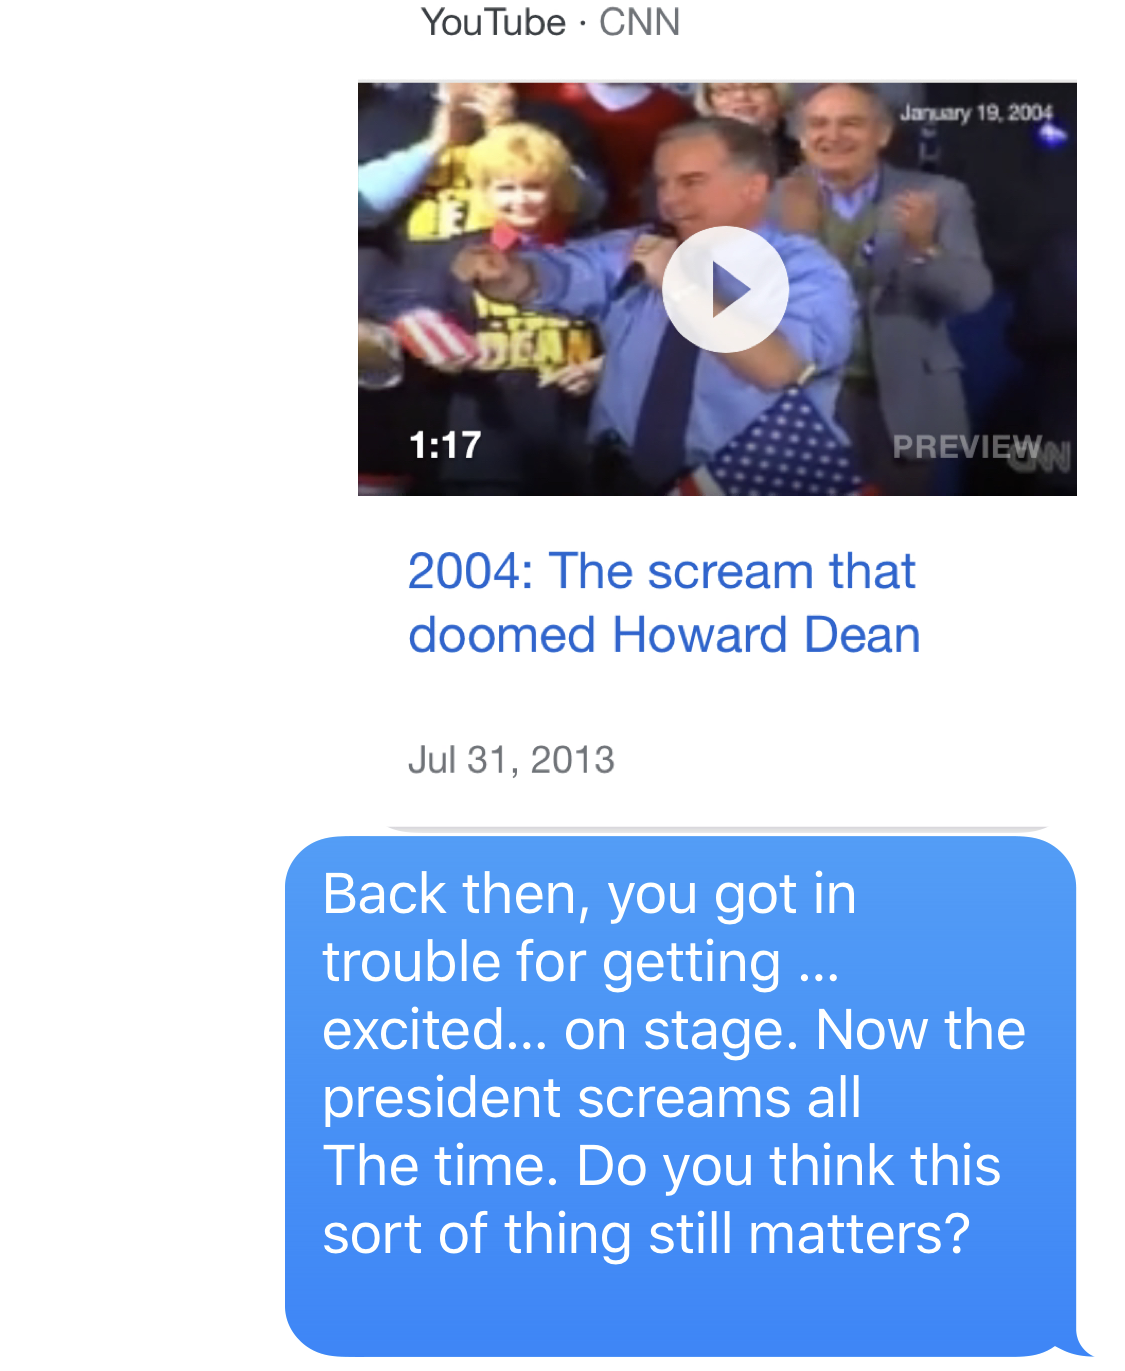 """IMAGE DESCRIPTION: YouTube clip of CNN clip entitled, """"2004: The scream that doomed Howard Dean""""  BEN SMITH: Back then, you got in trouble for getting … excited… on stage. Now the president screams all The time. Do you think this sort of thing still matters?"""